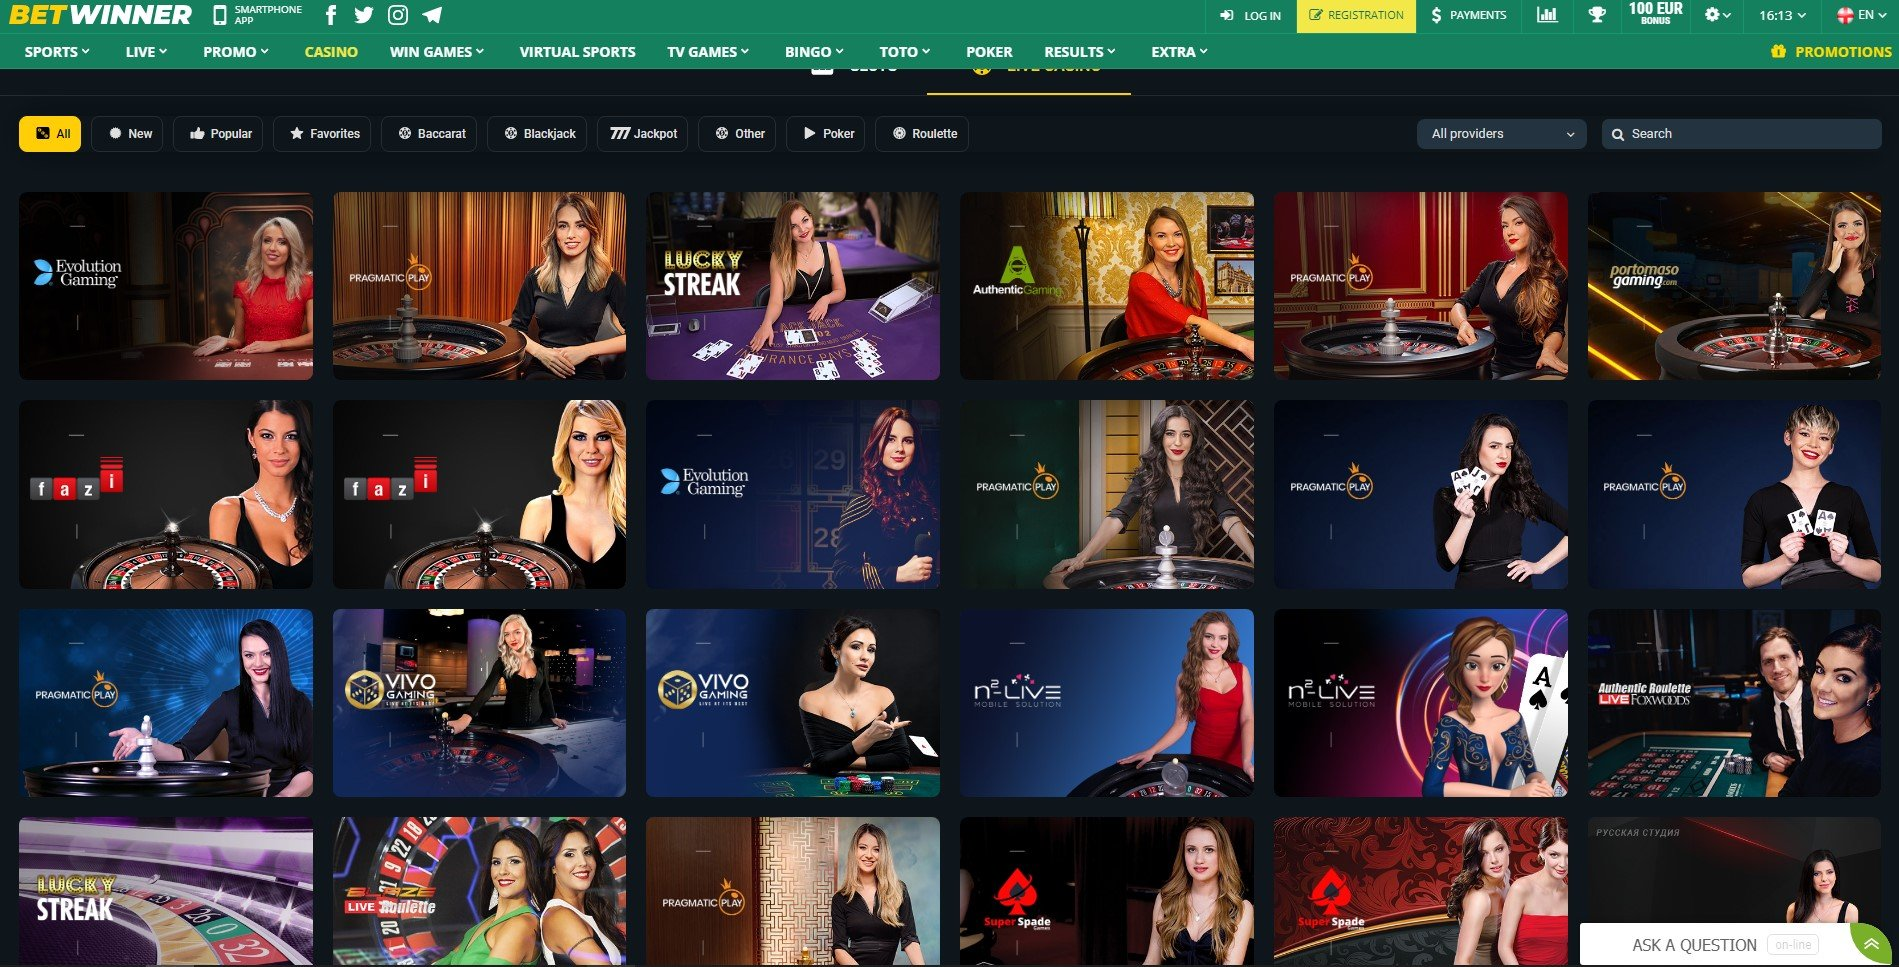 betwinner casino live games